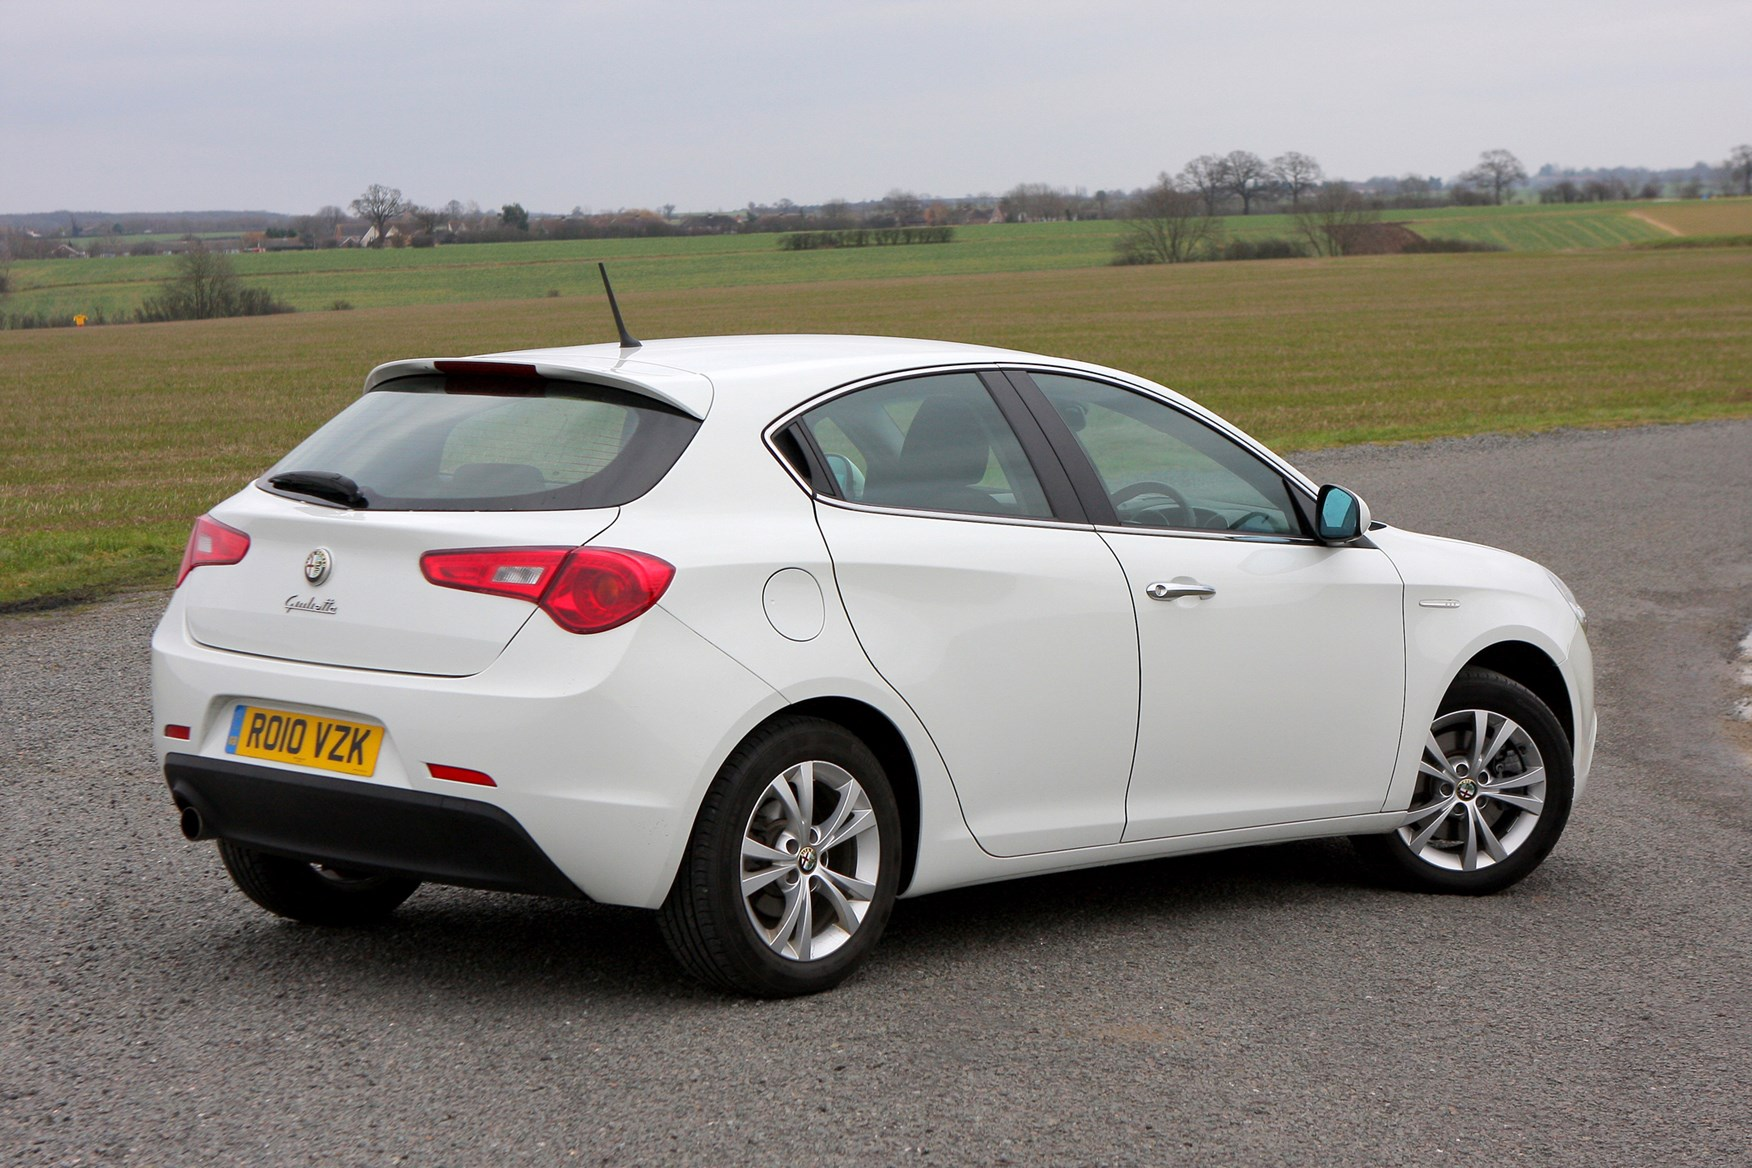 Alfa Romeo Giulietta Hatchback (2010 - ) Features, Equipment and  Accessories | Parkers